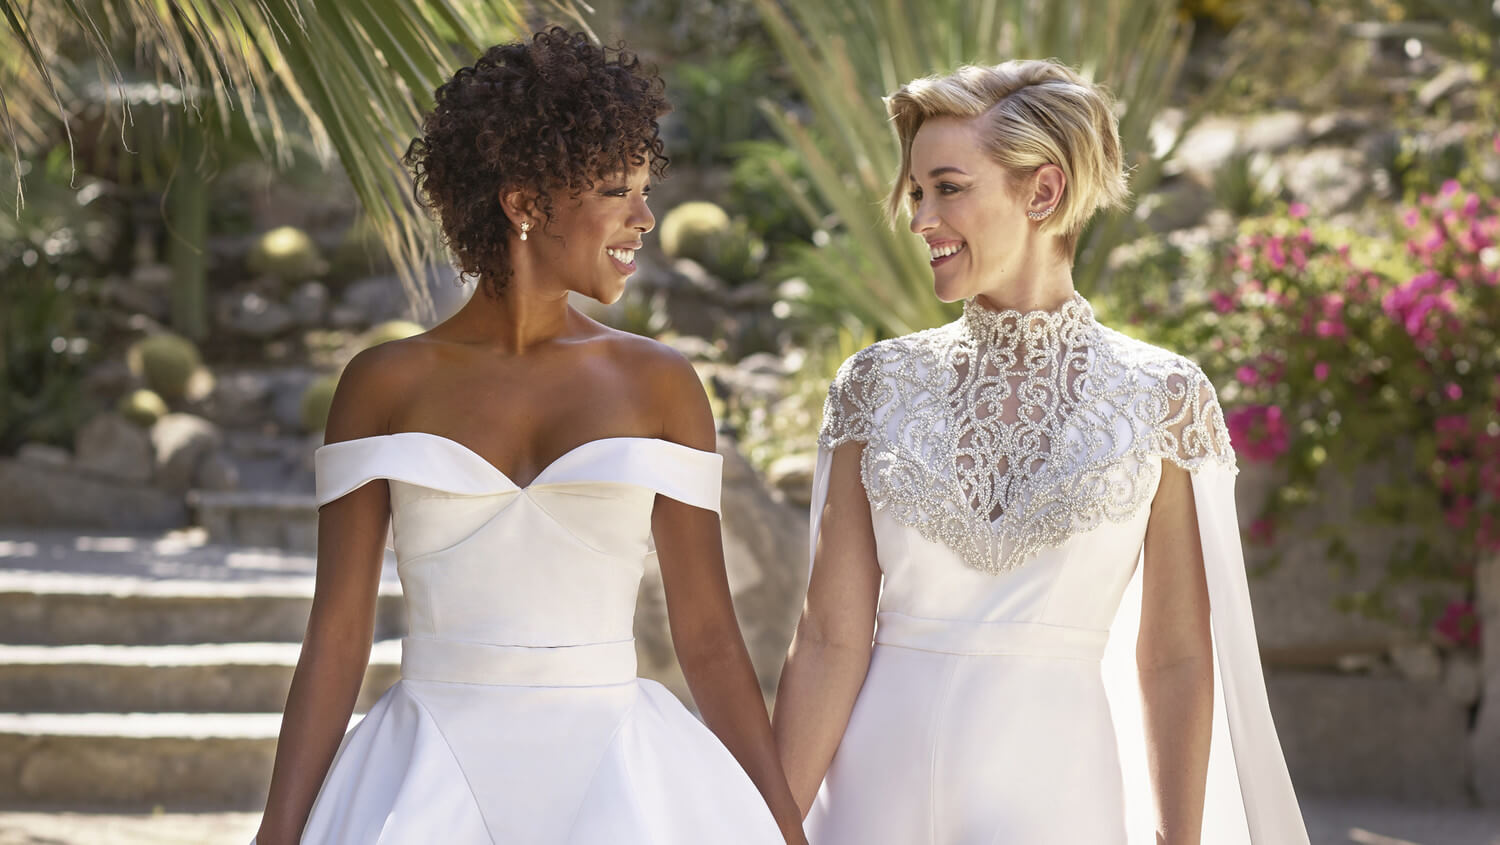 Samira Wiley e Lauren Morelli